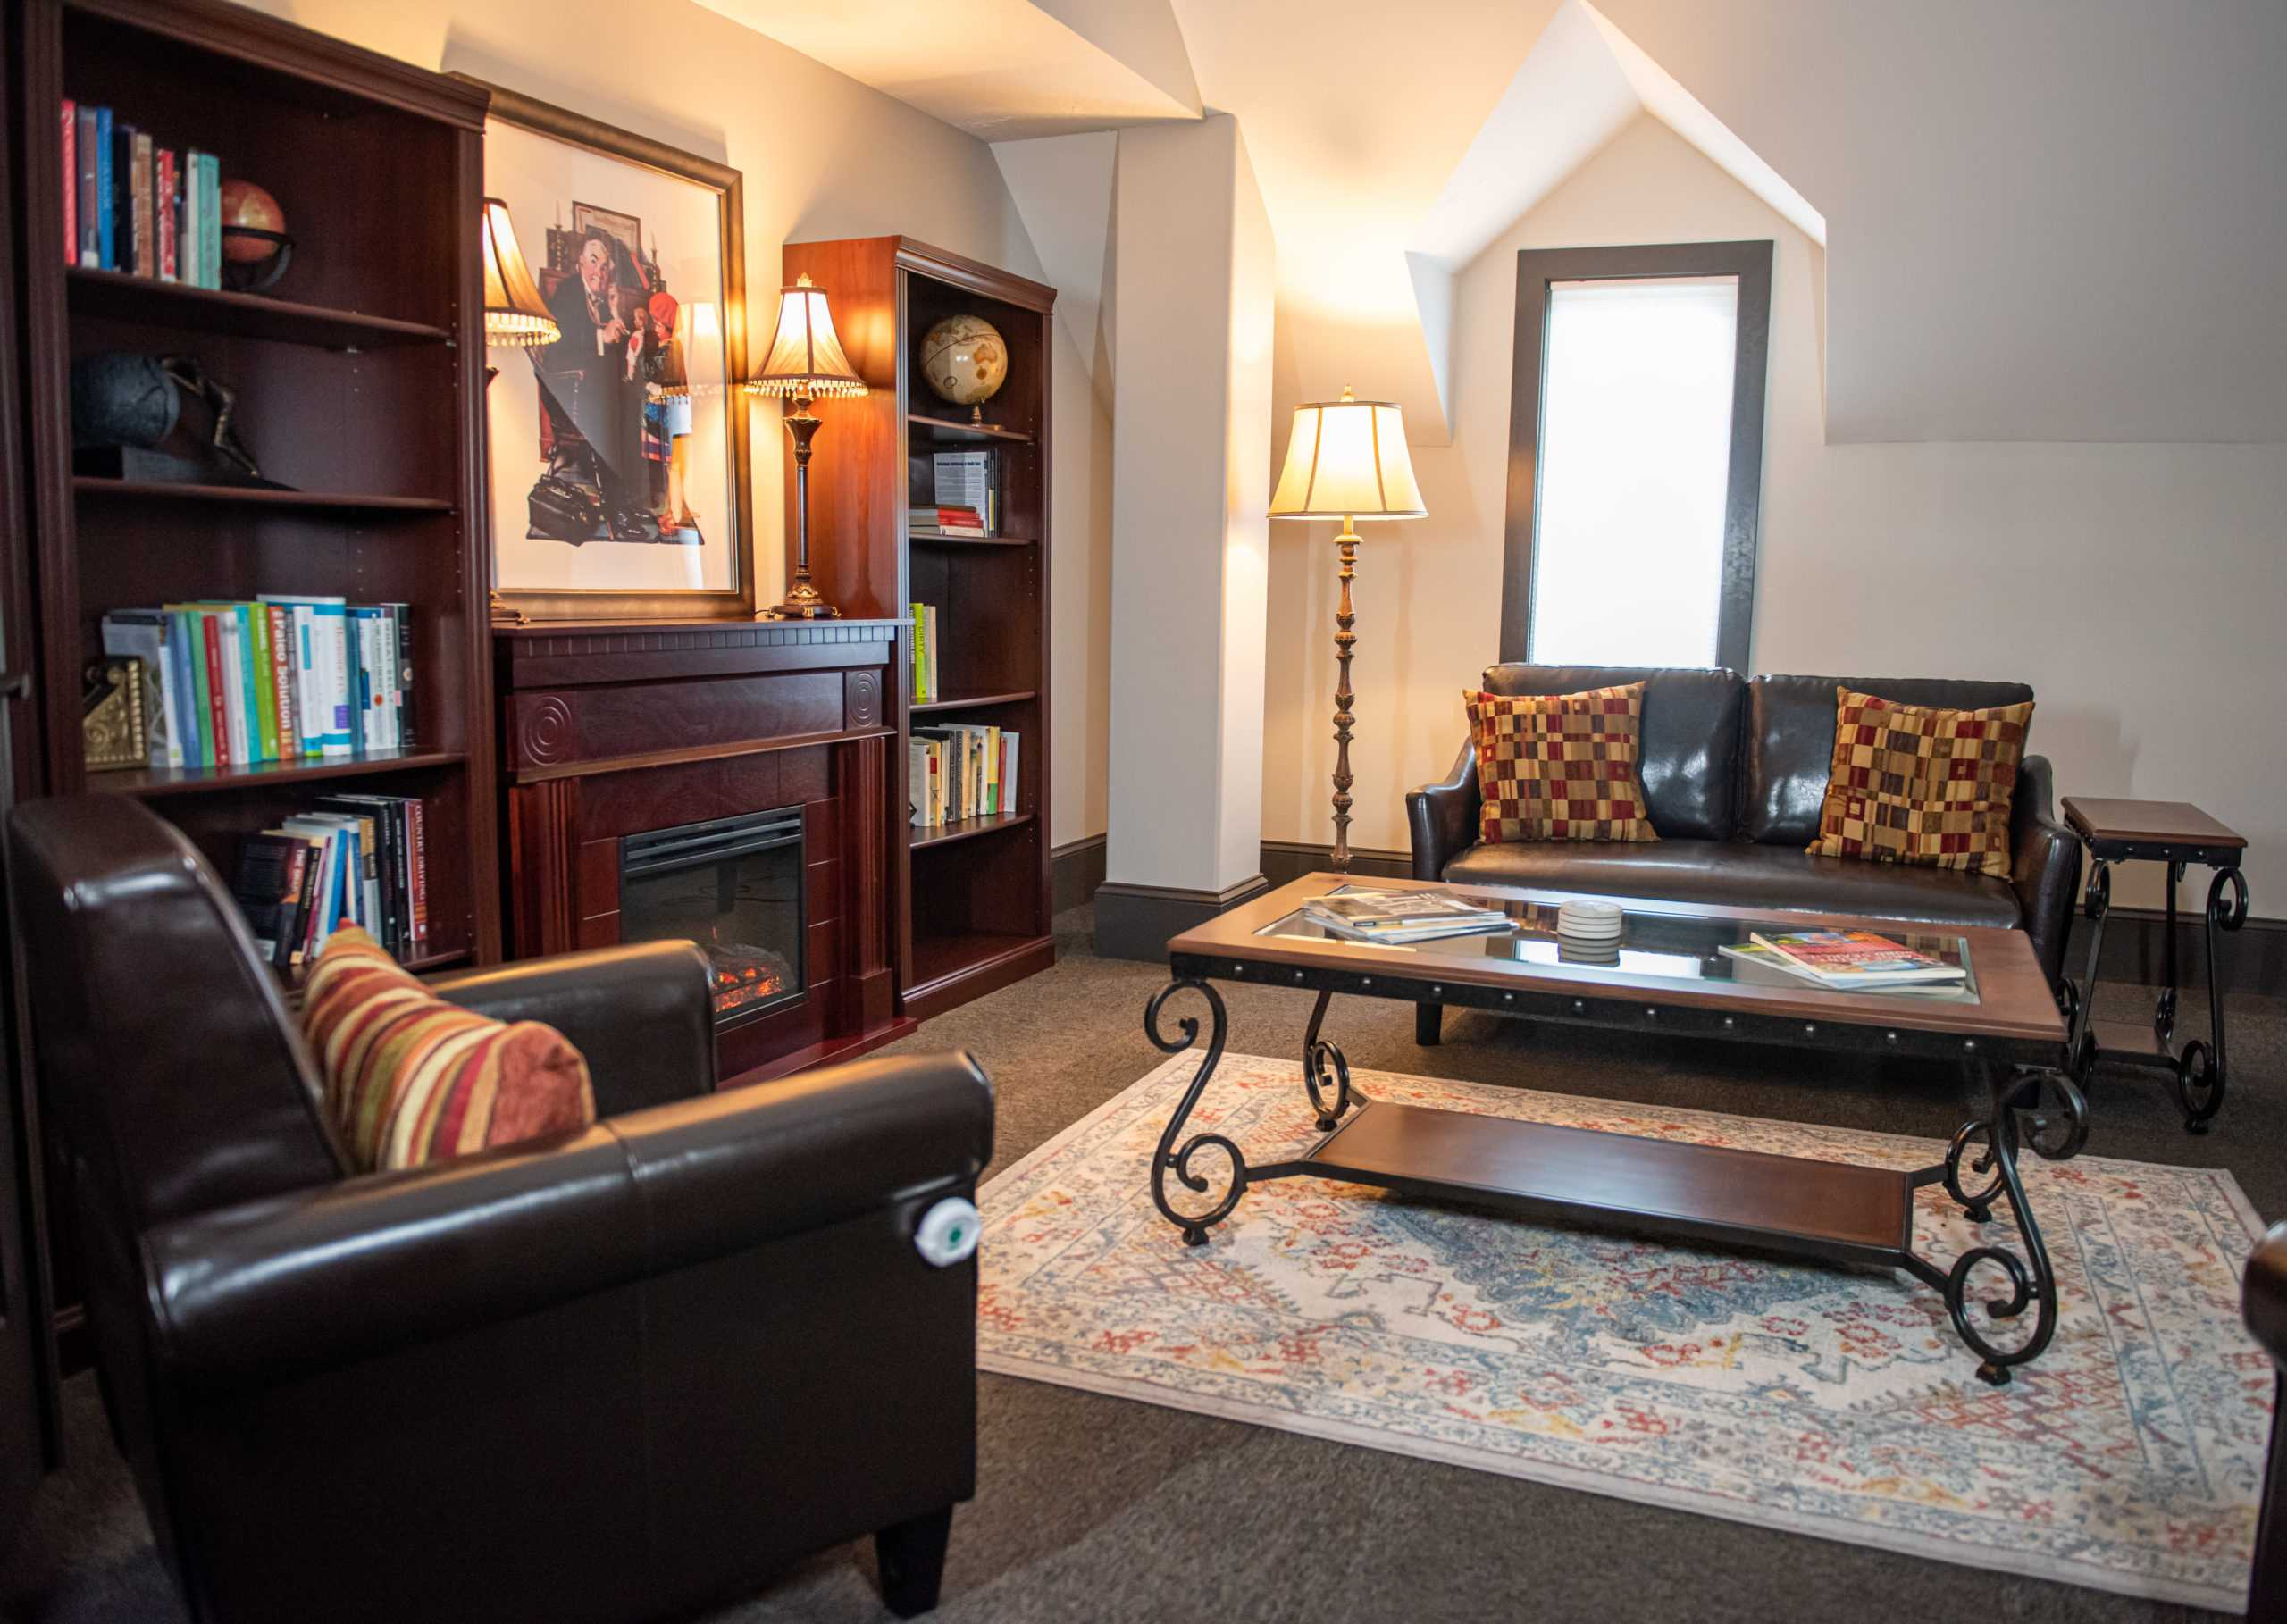 Luxurious Room - Lifestyle IV Drips - IV Therapy in Springfield Missouri